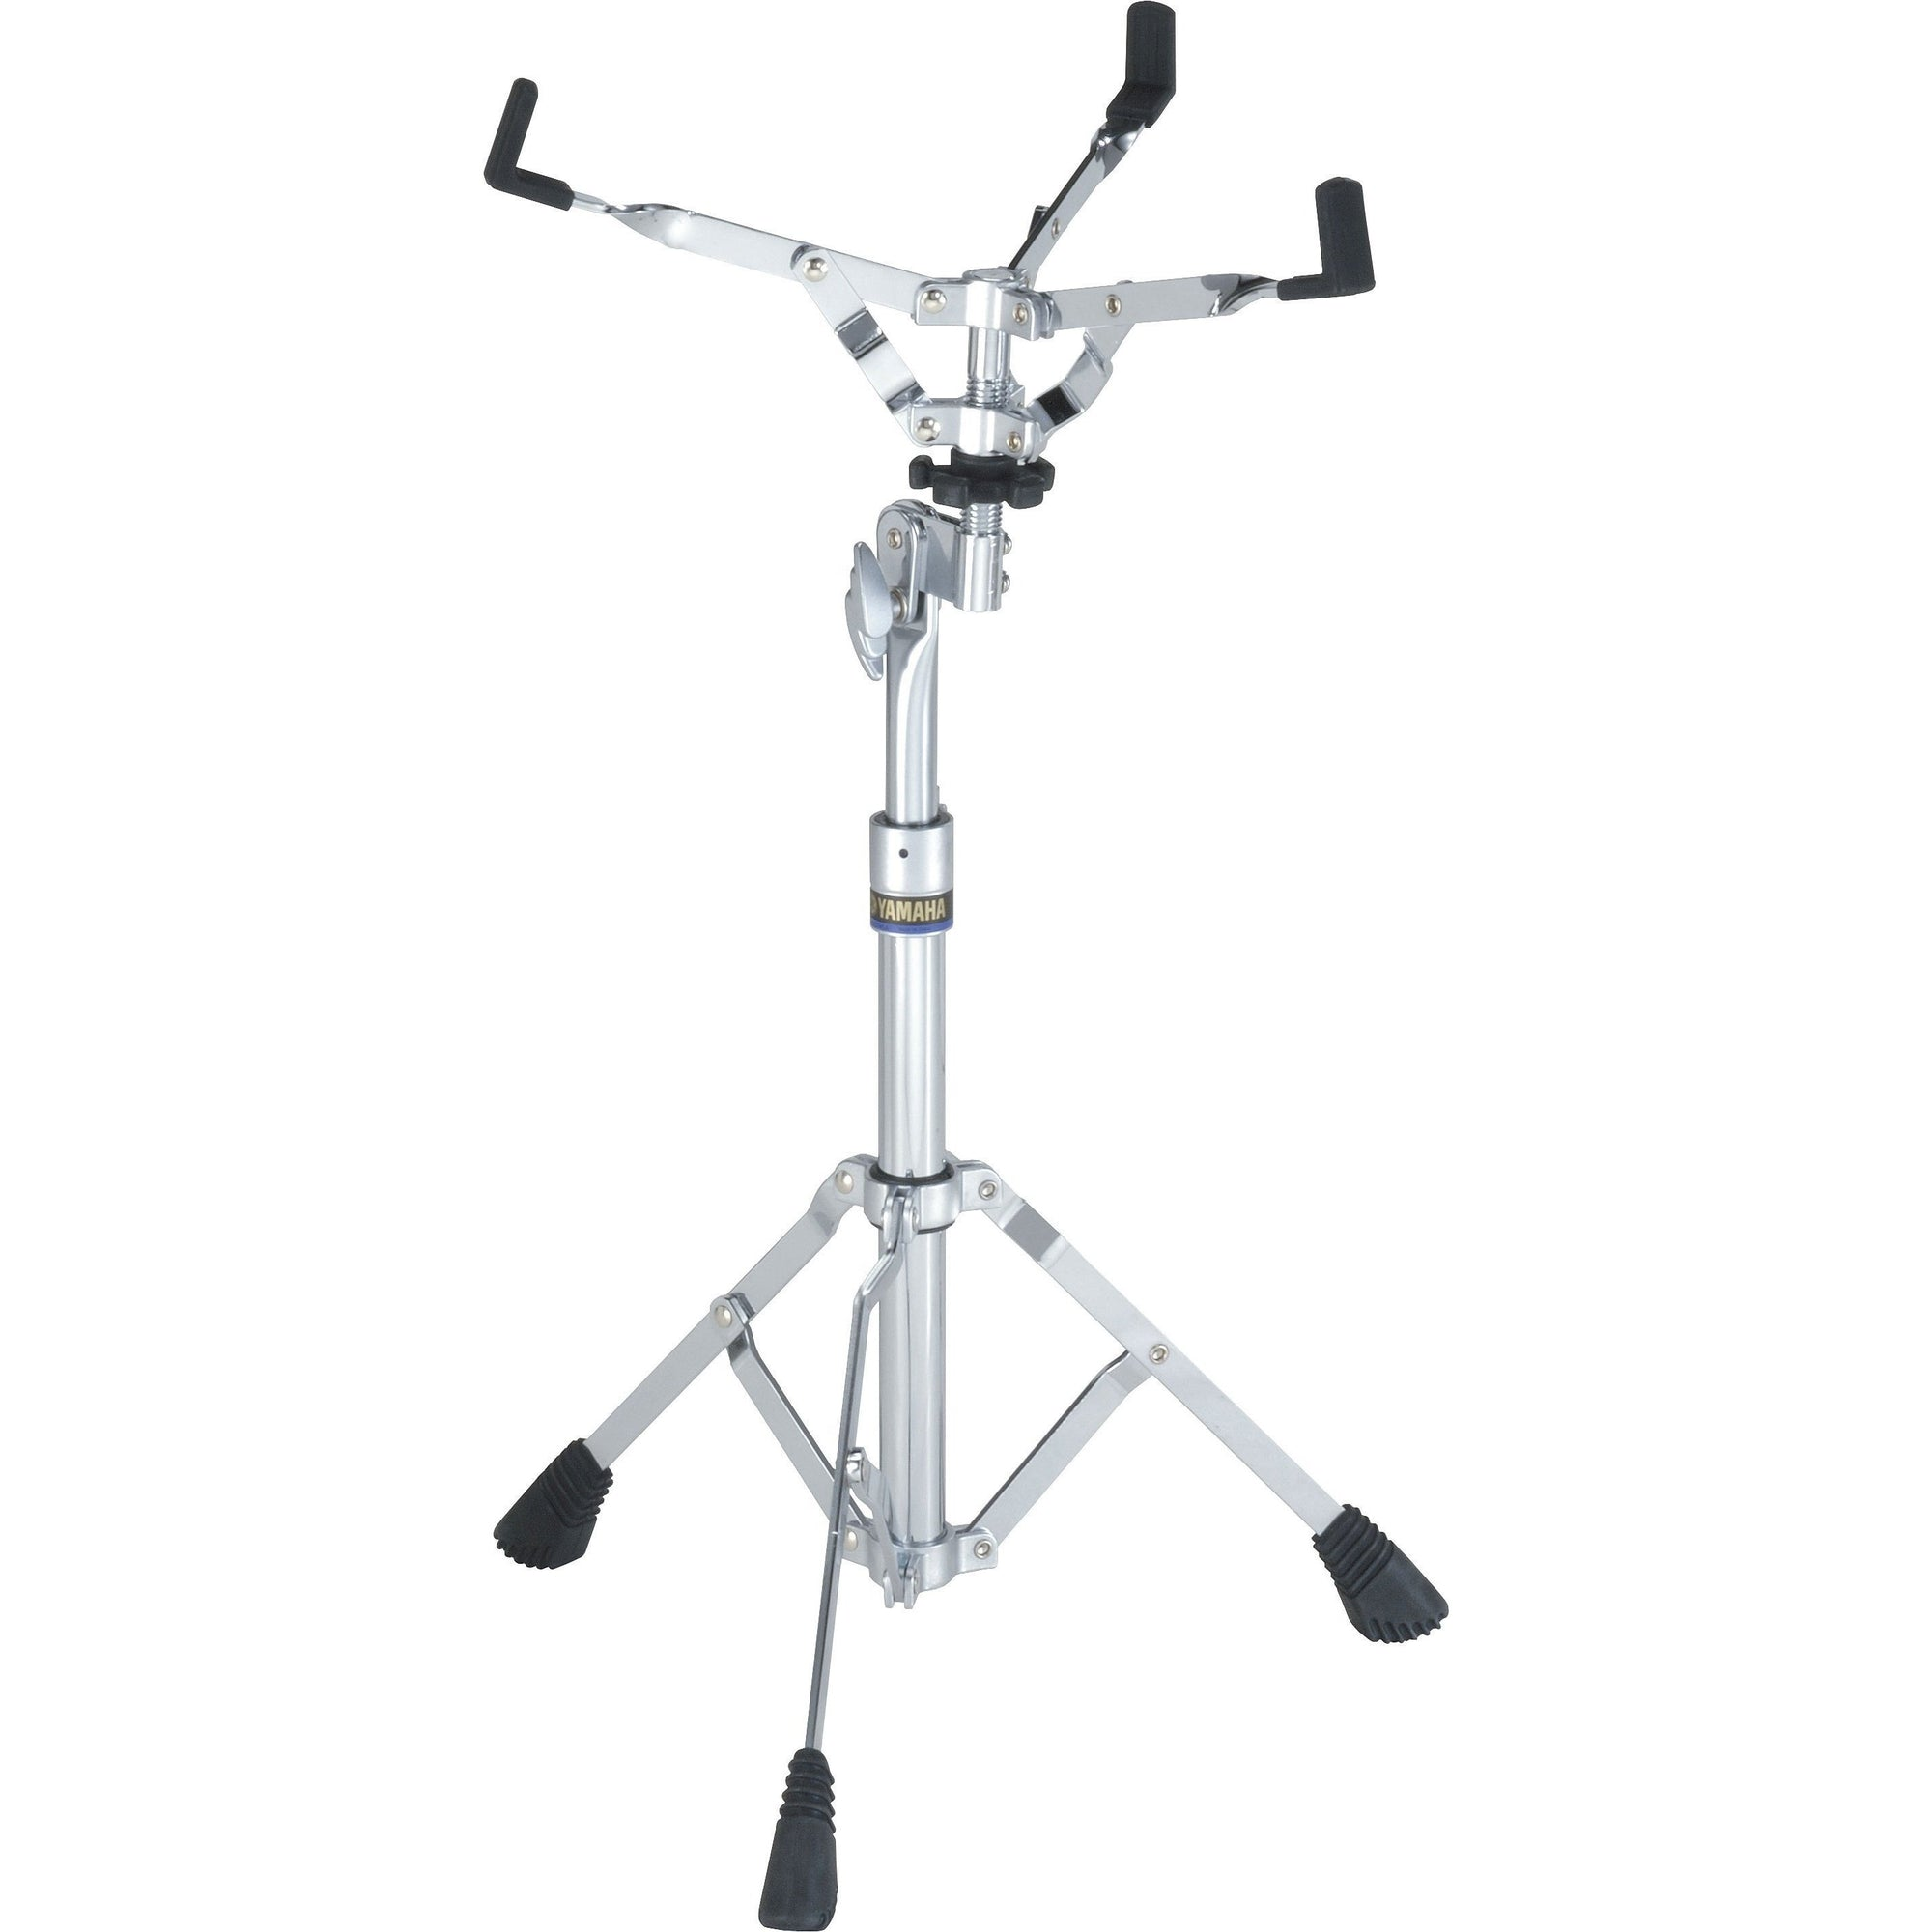 Yamaha - SS-745A - Snare Drum Stand-Percussion-Yamaha-Music Elements